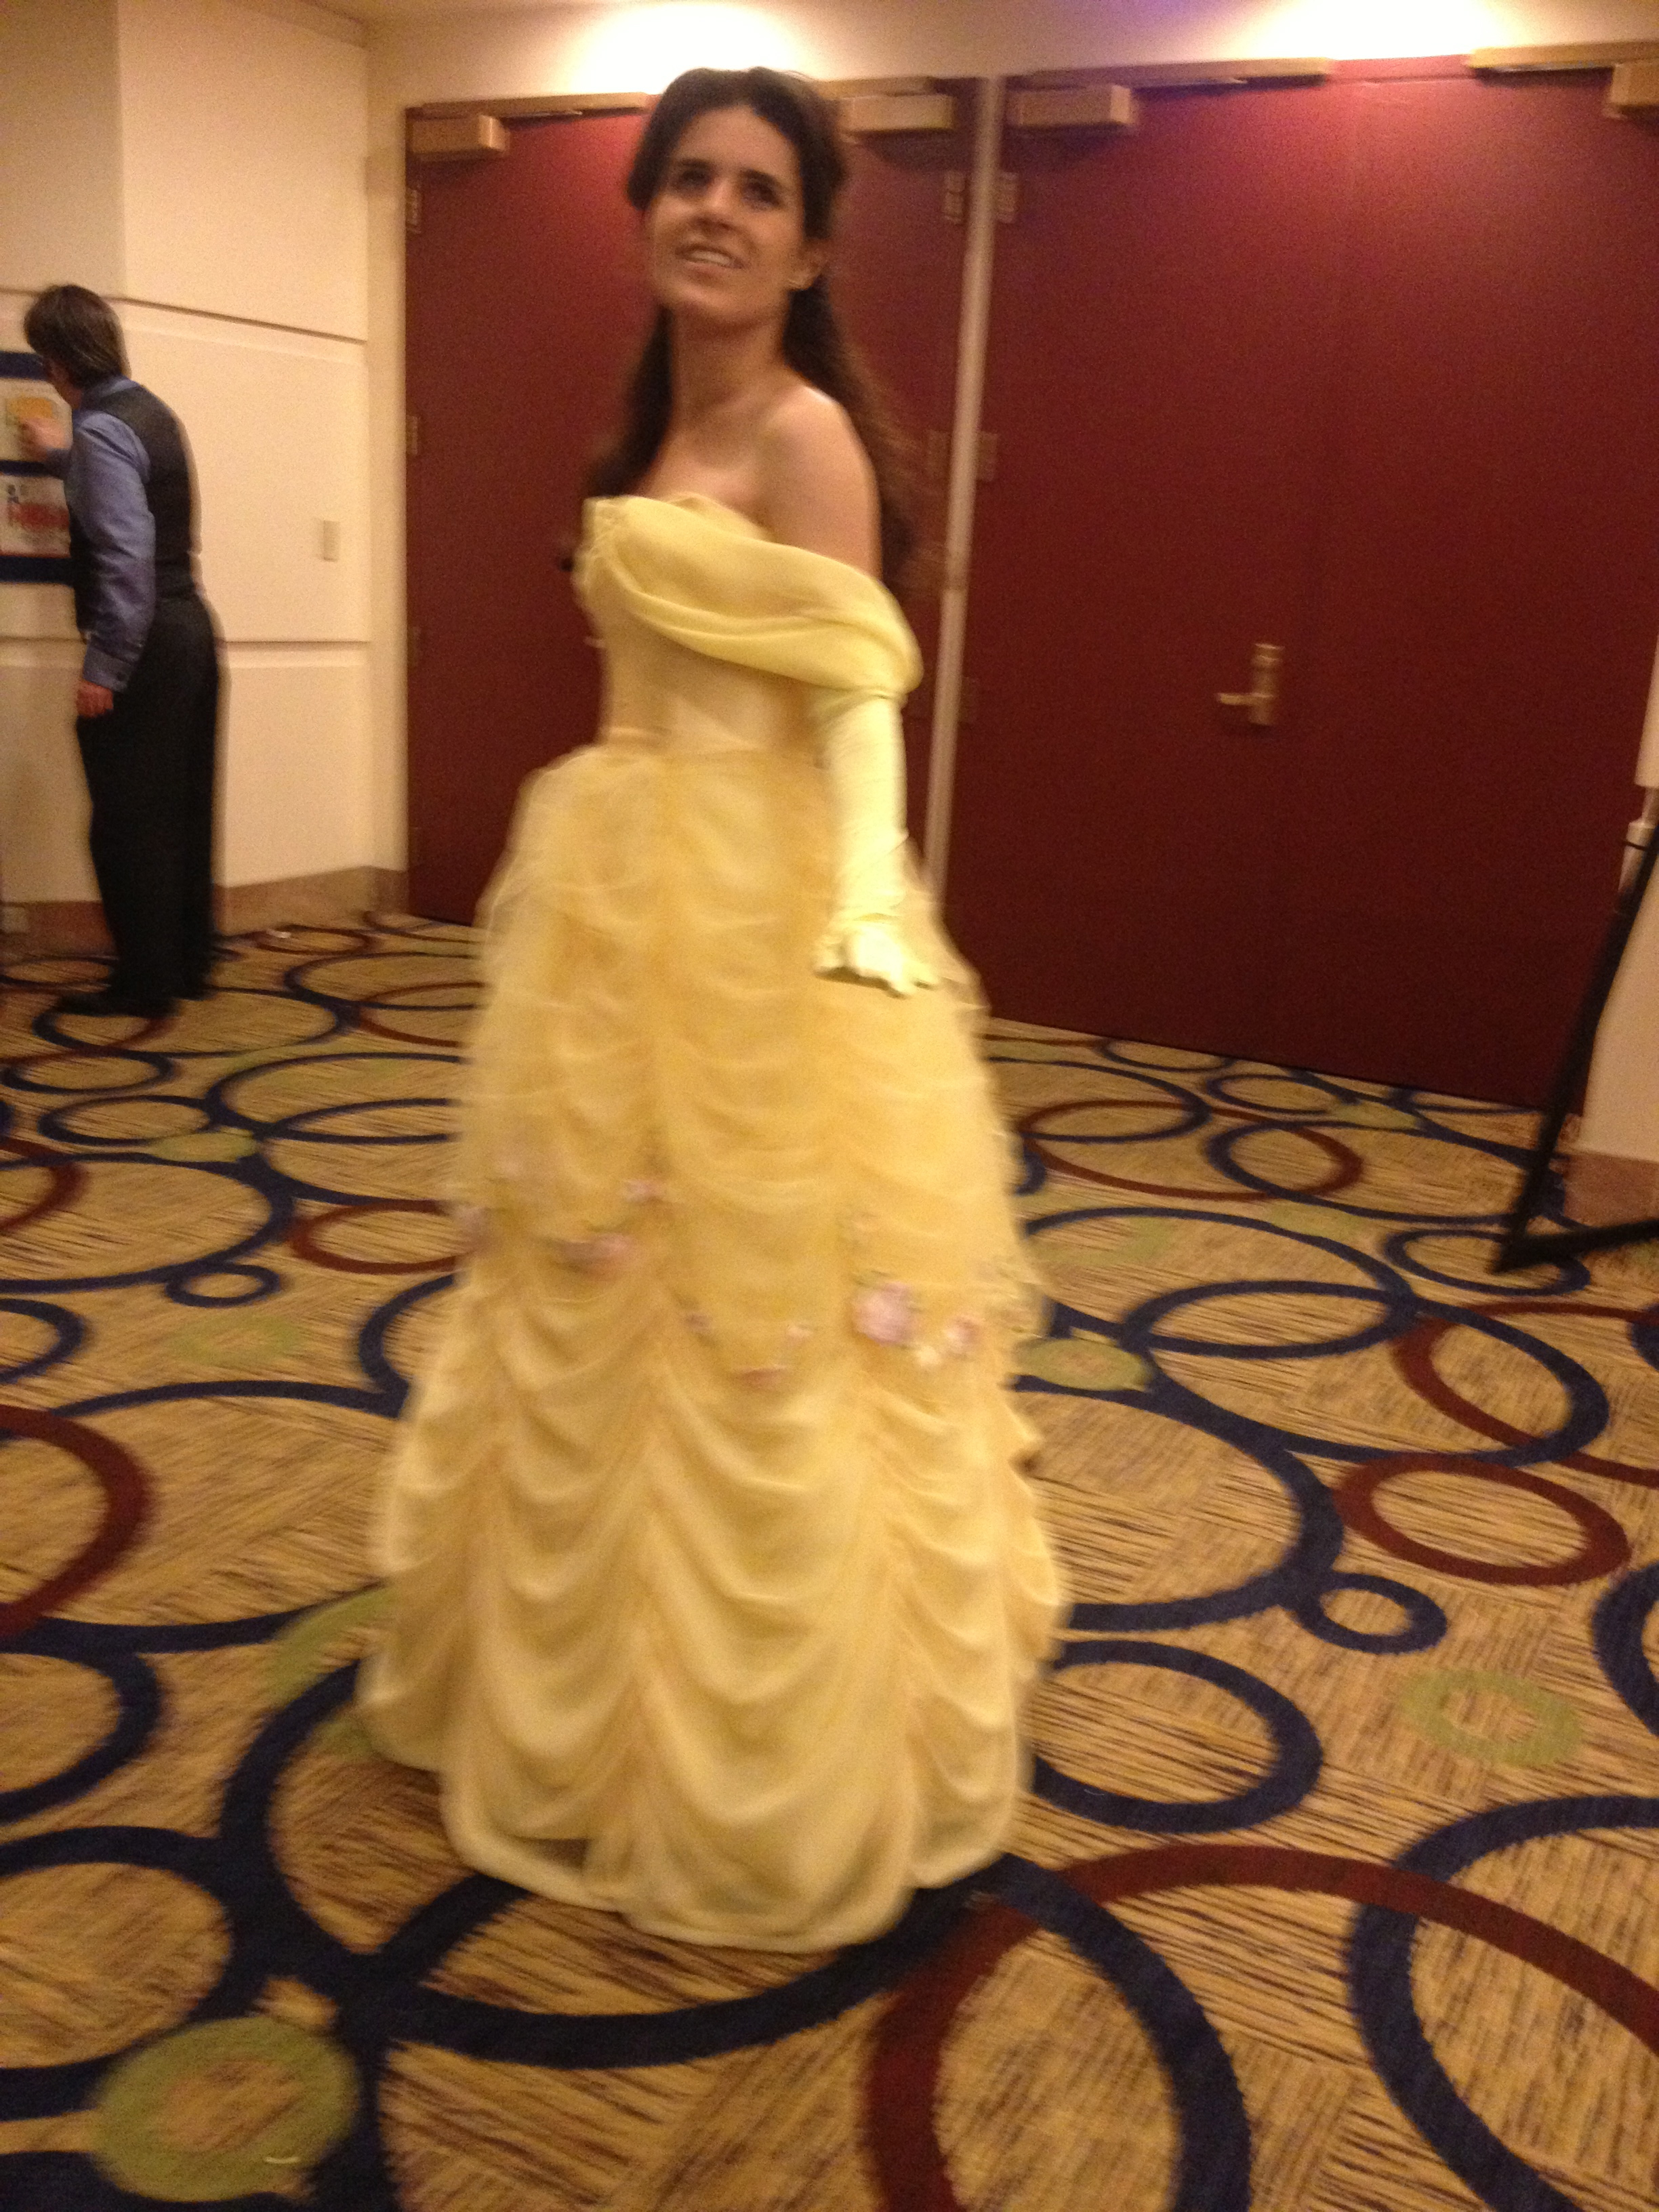 Woman dressed as Belle from Beauty and the Beast